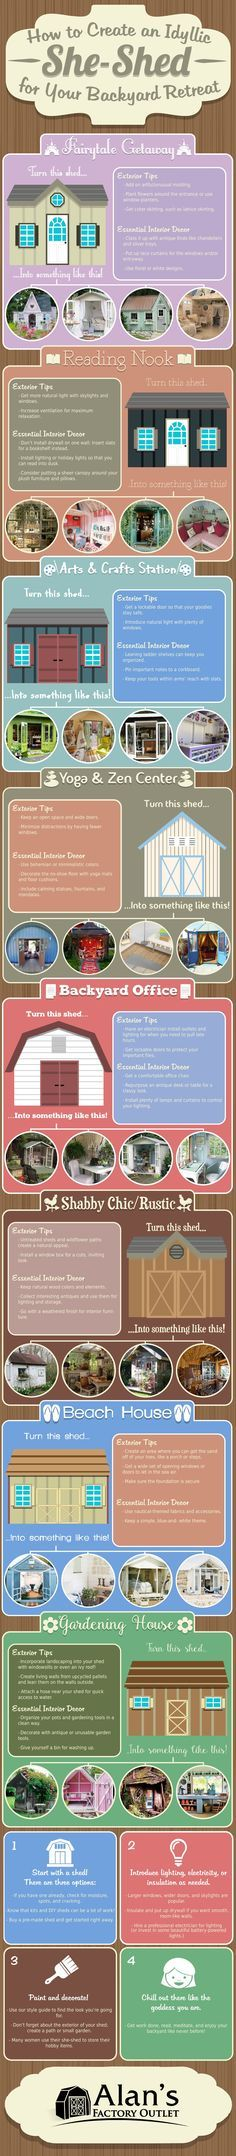 Do you have master plans for taking over your backyard? This guide to creating a she-shed will help you design your very own feminine backyard retreat.